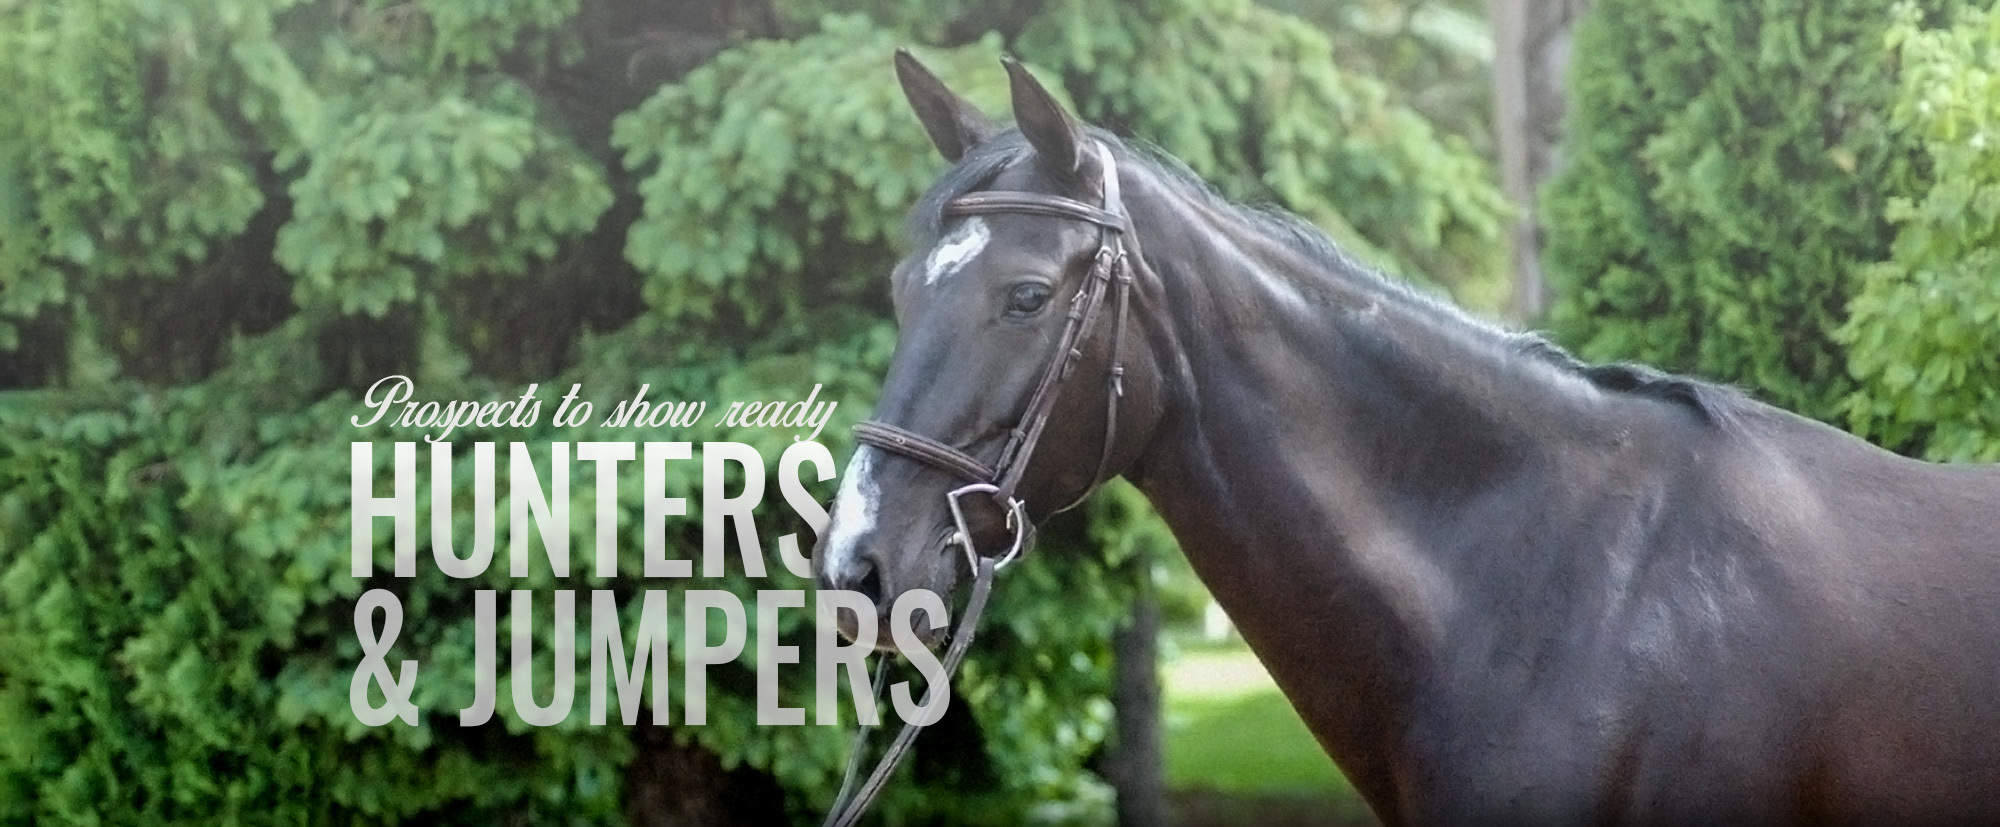 Prospects to show ready hunters & jumpers Galway Farm Long Grove, Illinois